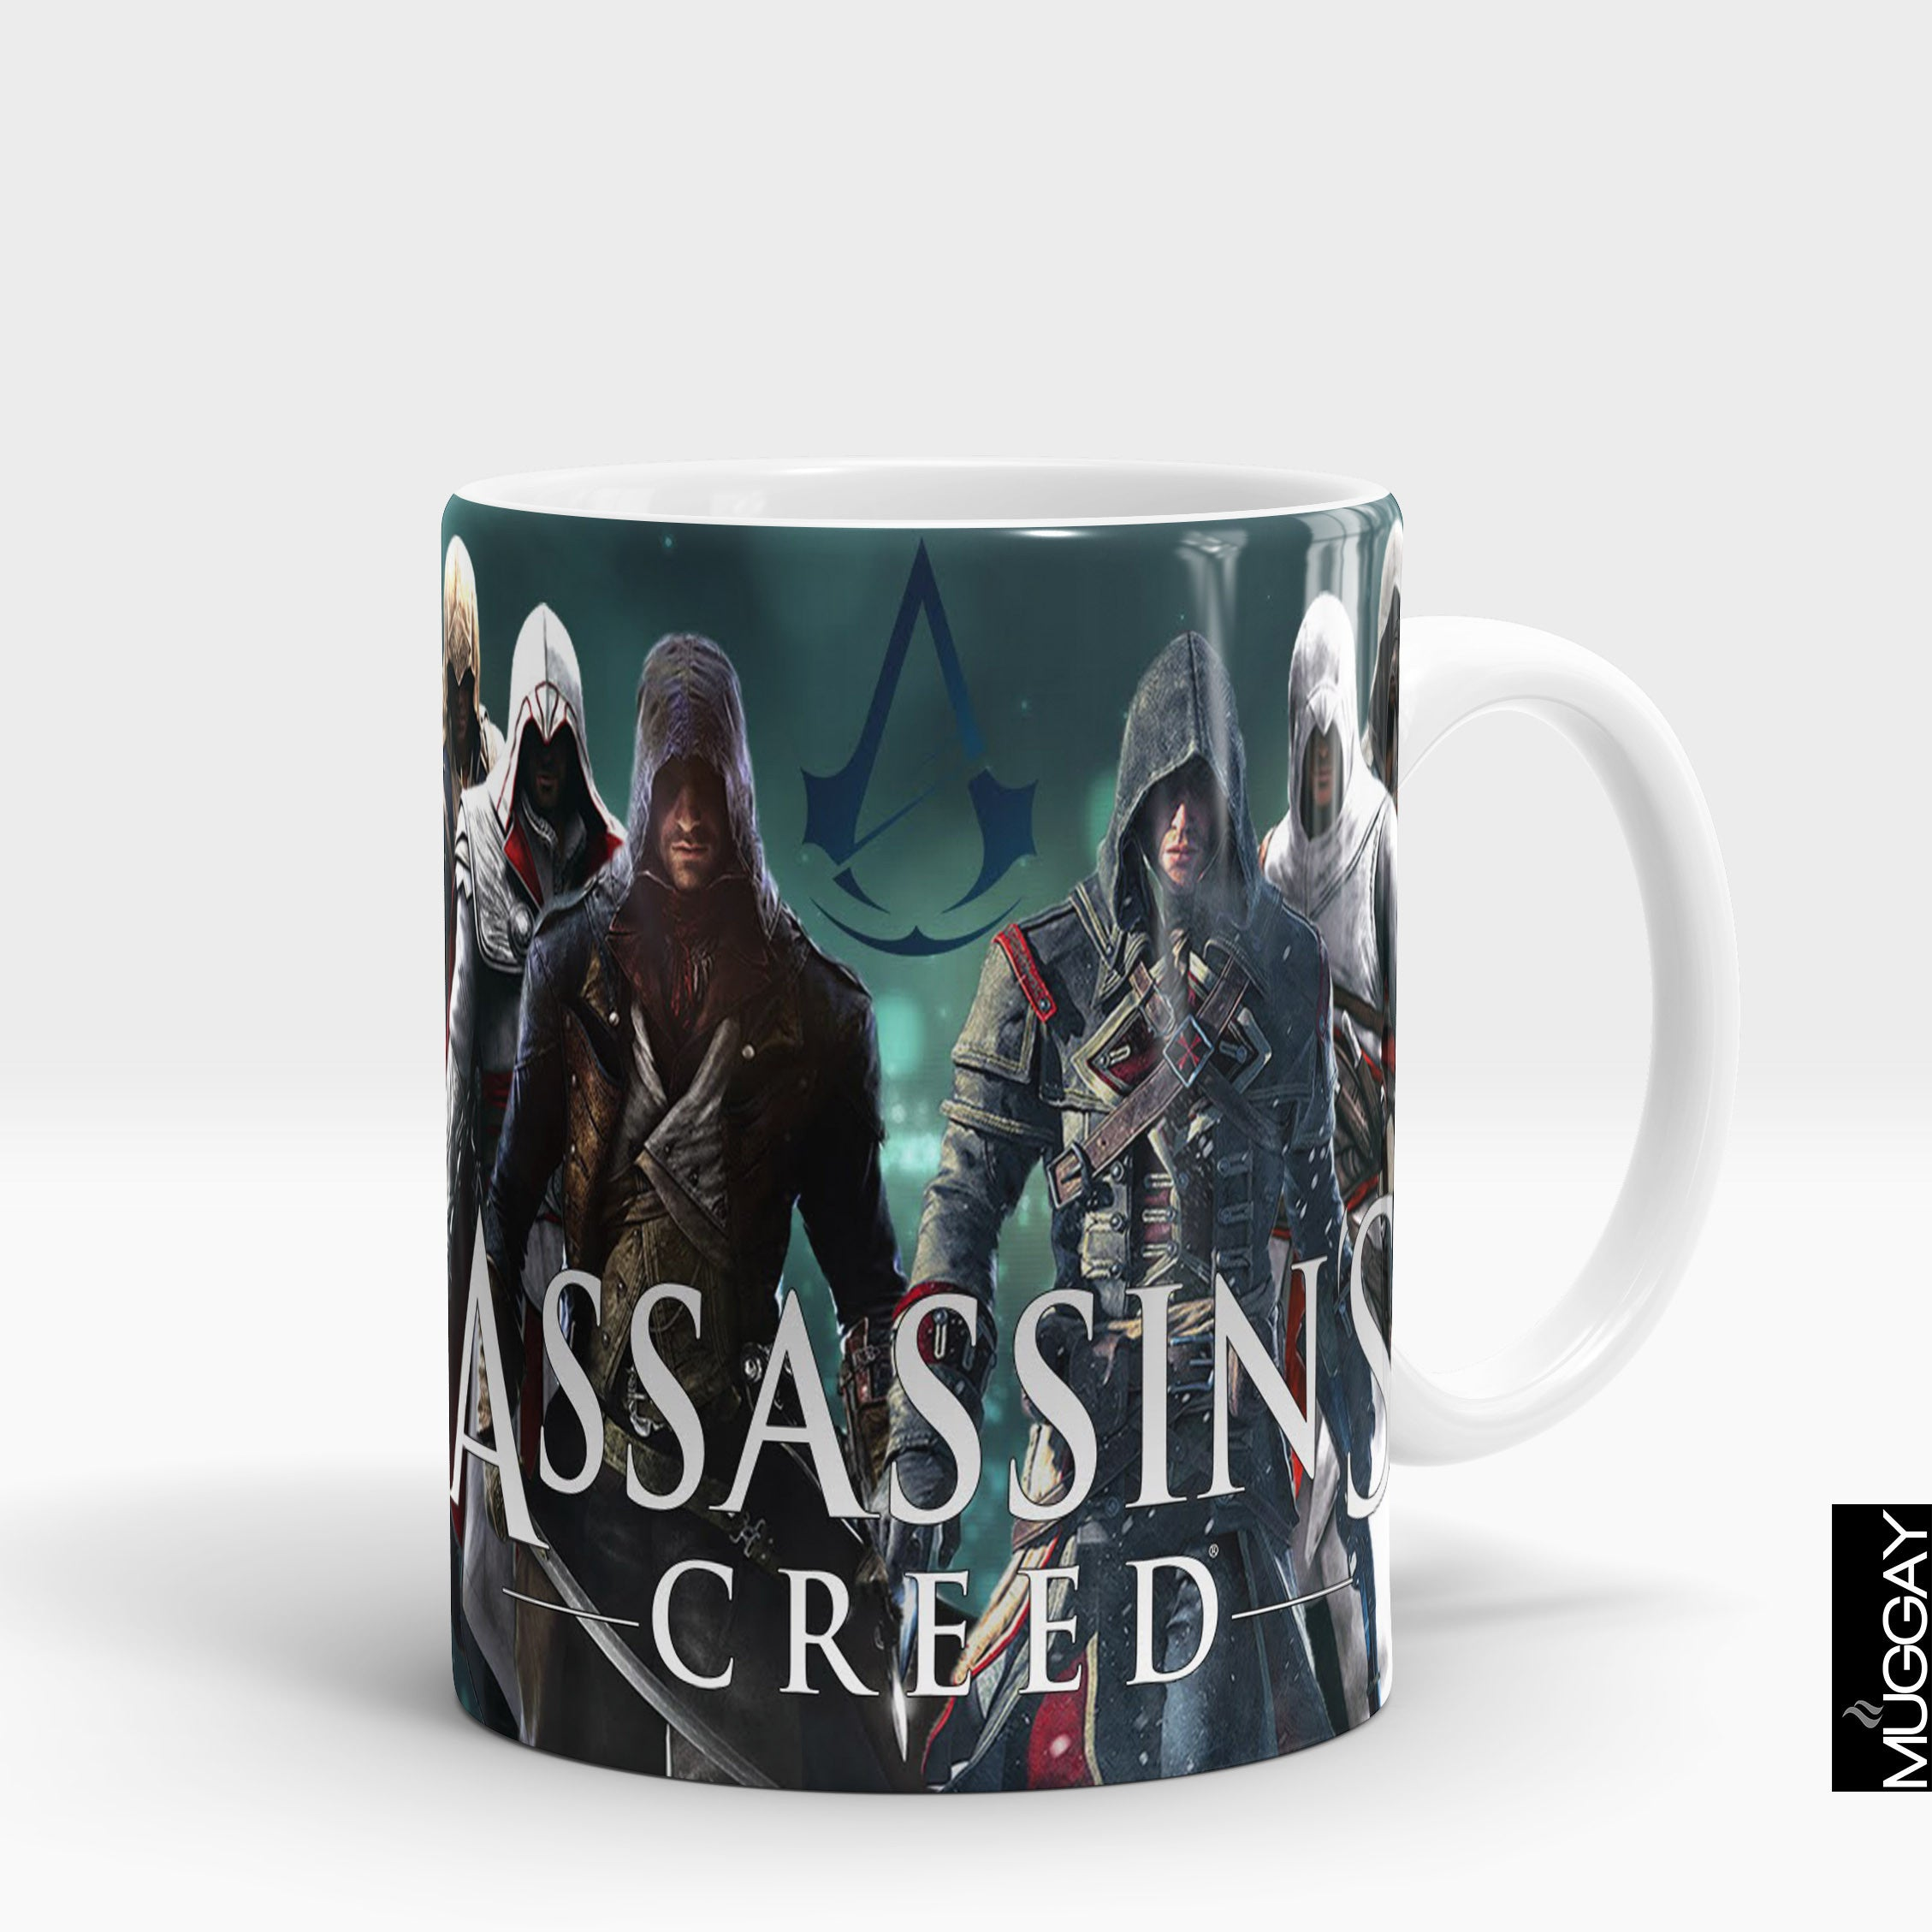 Assasins creed mugs - ac4 - Muggay.com - Mugs - Printing shop - truck Art mugs - Mug printing - Customized printing - Digital printing - Muggay